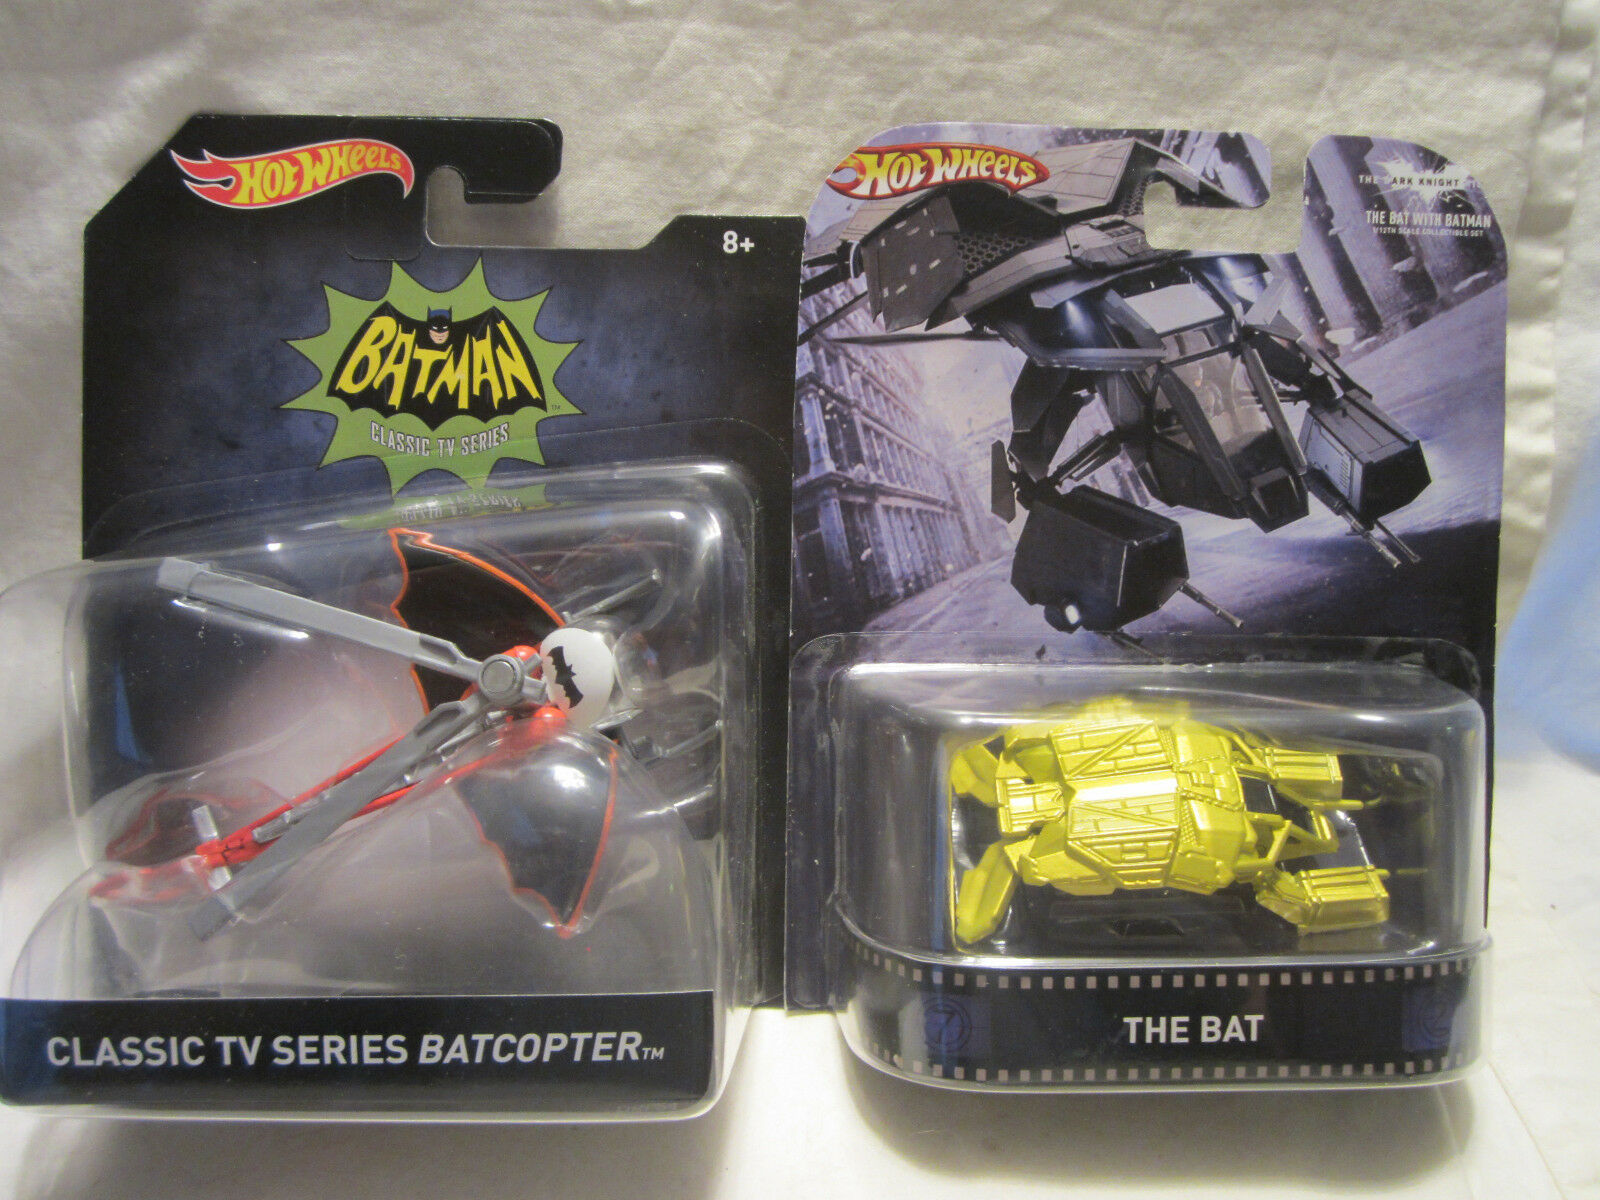 Hot Wheels Custom THE BAT Vehicle & Batman Classic TV Series BATCOPTER